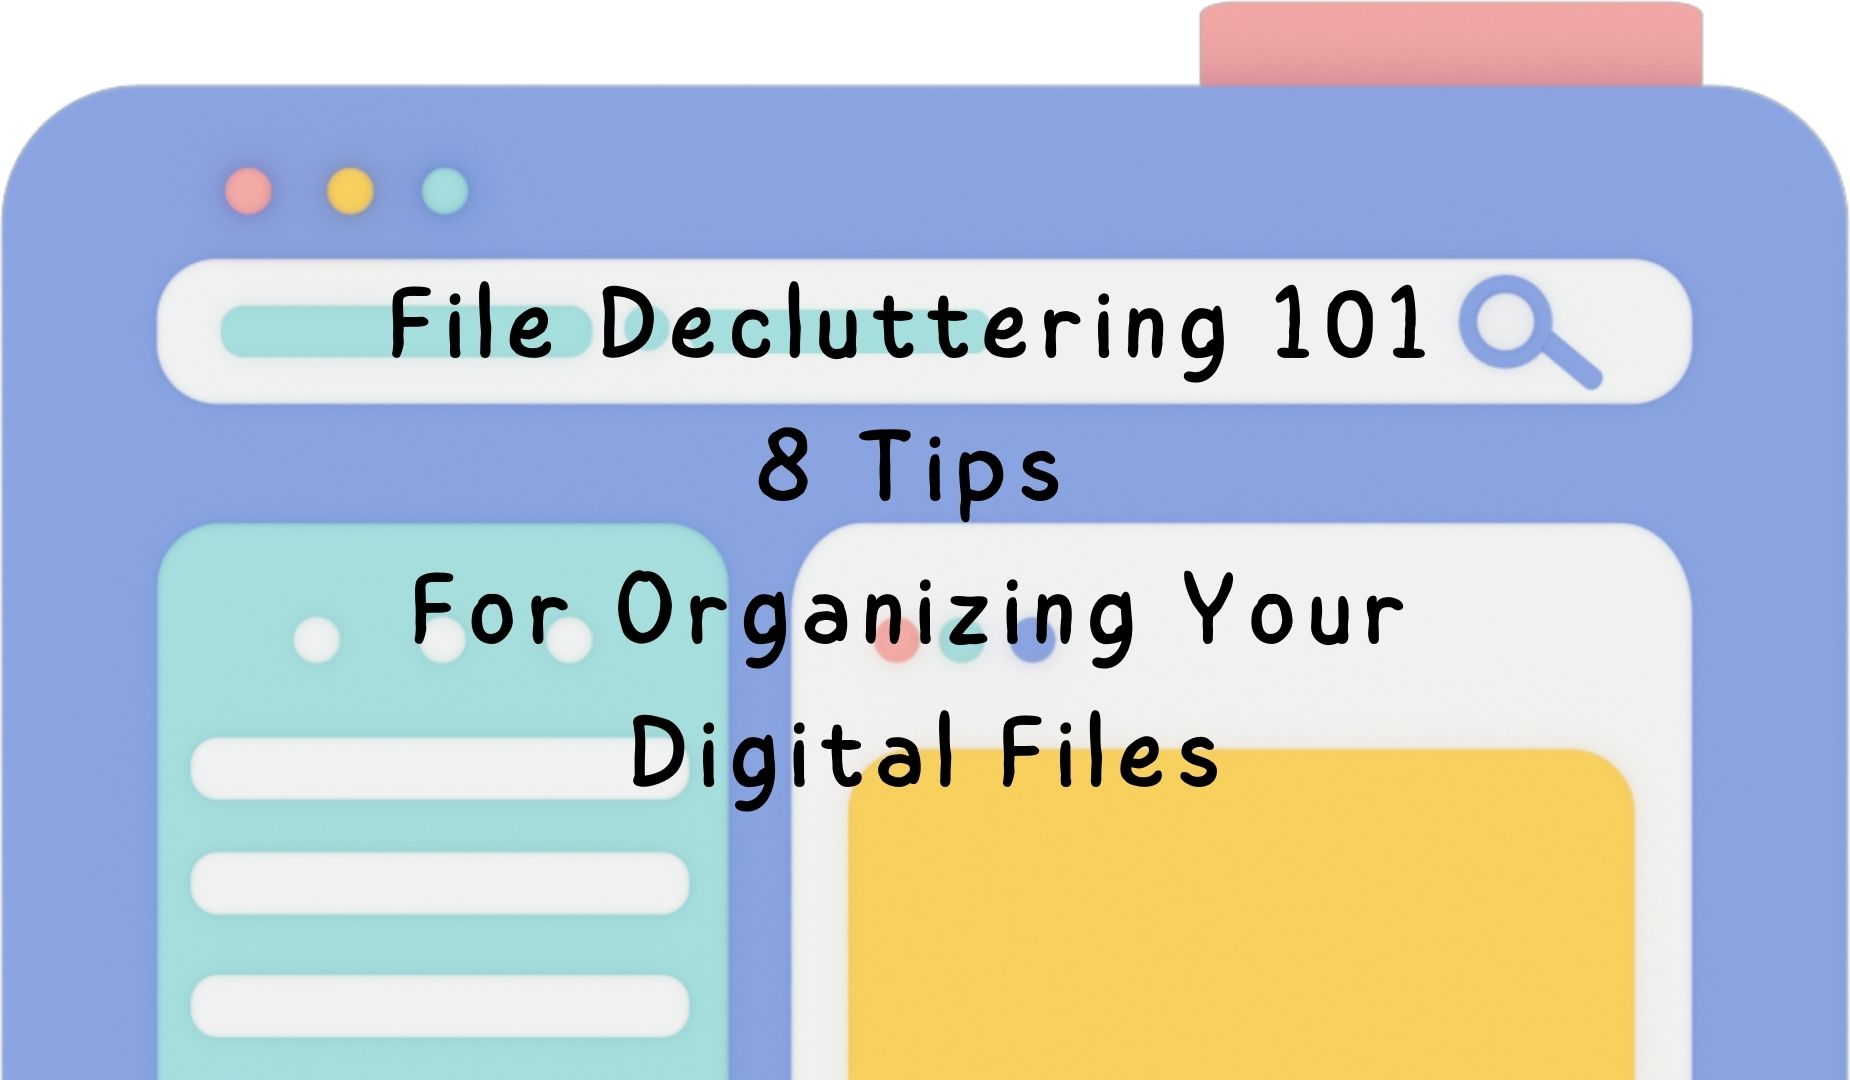 File Decluttering 101: 8 Tips For Organizing Your Digital Files